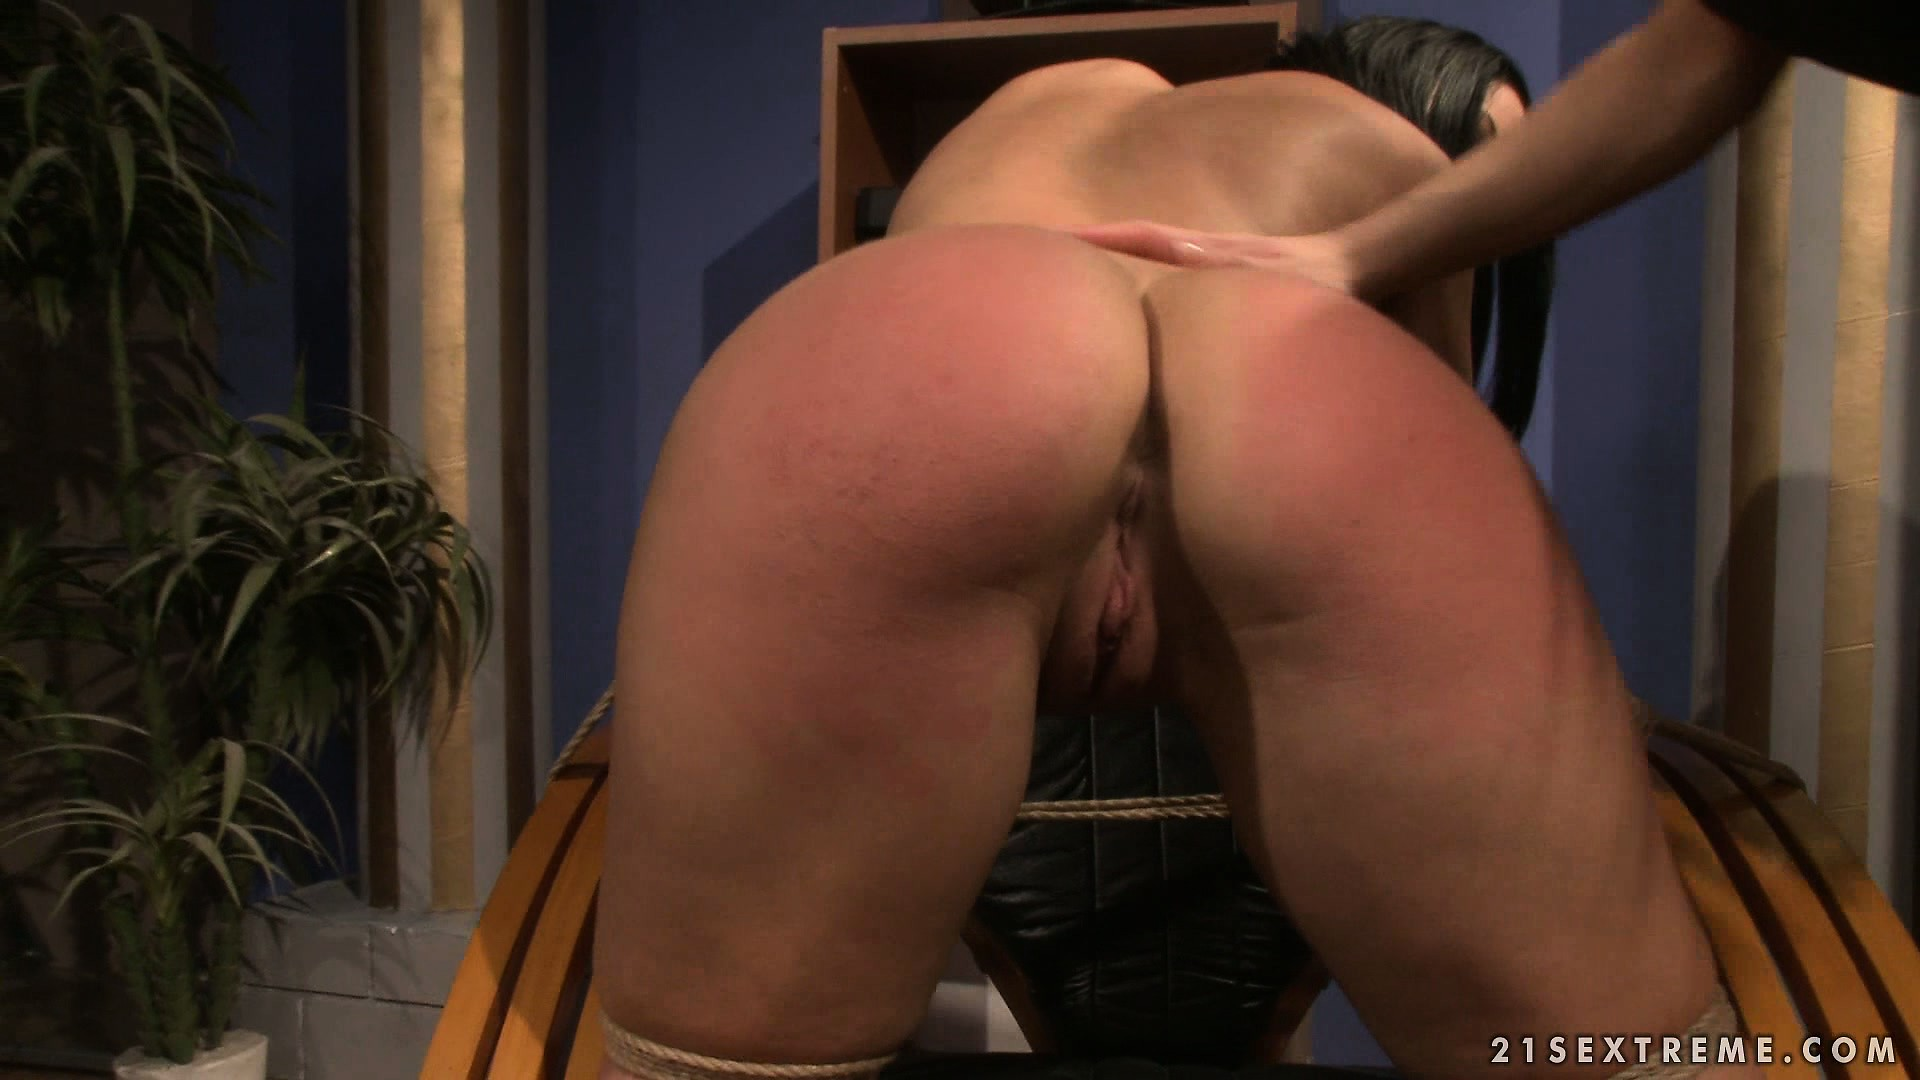 Porno Video of Executive Secretary Gets Tied Up By Her Boss And Gets Ass Spanked